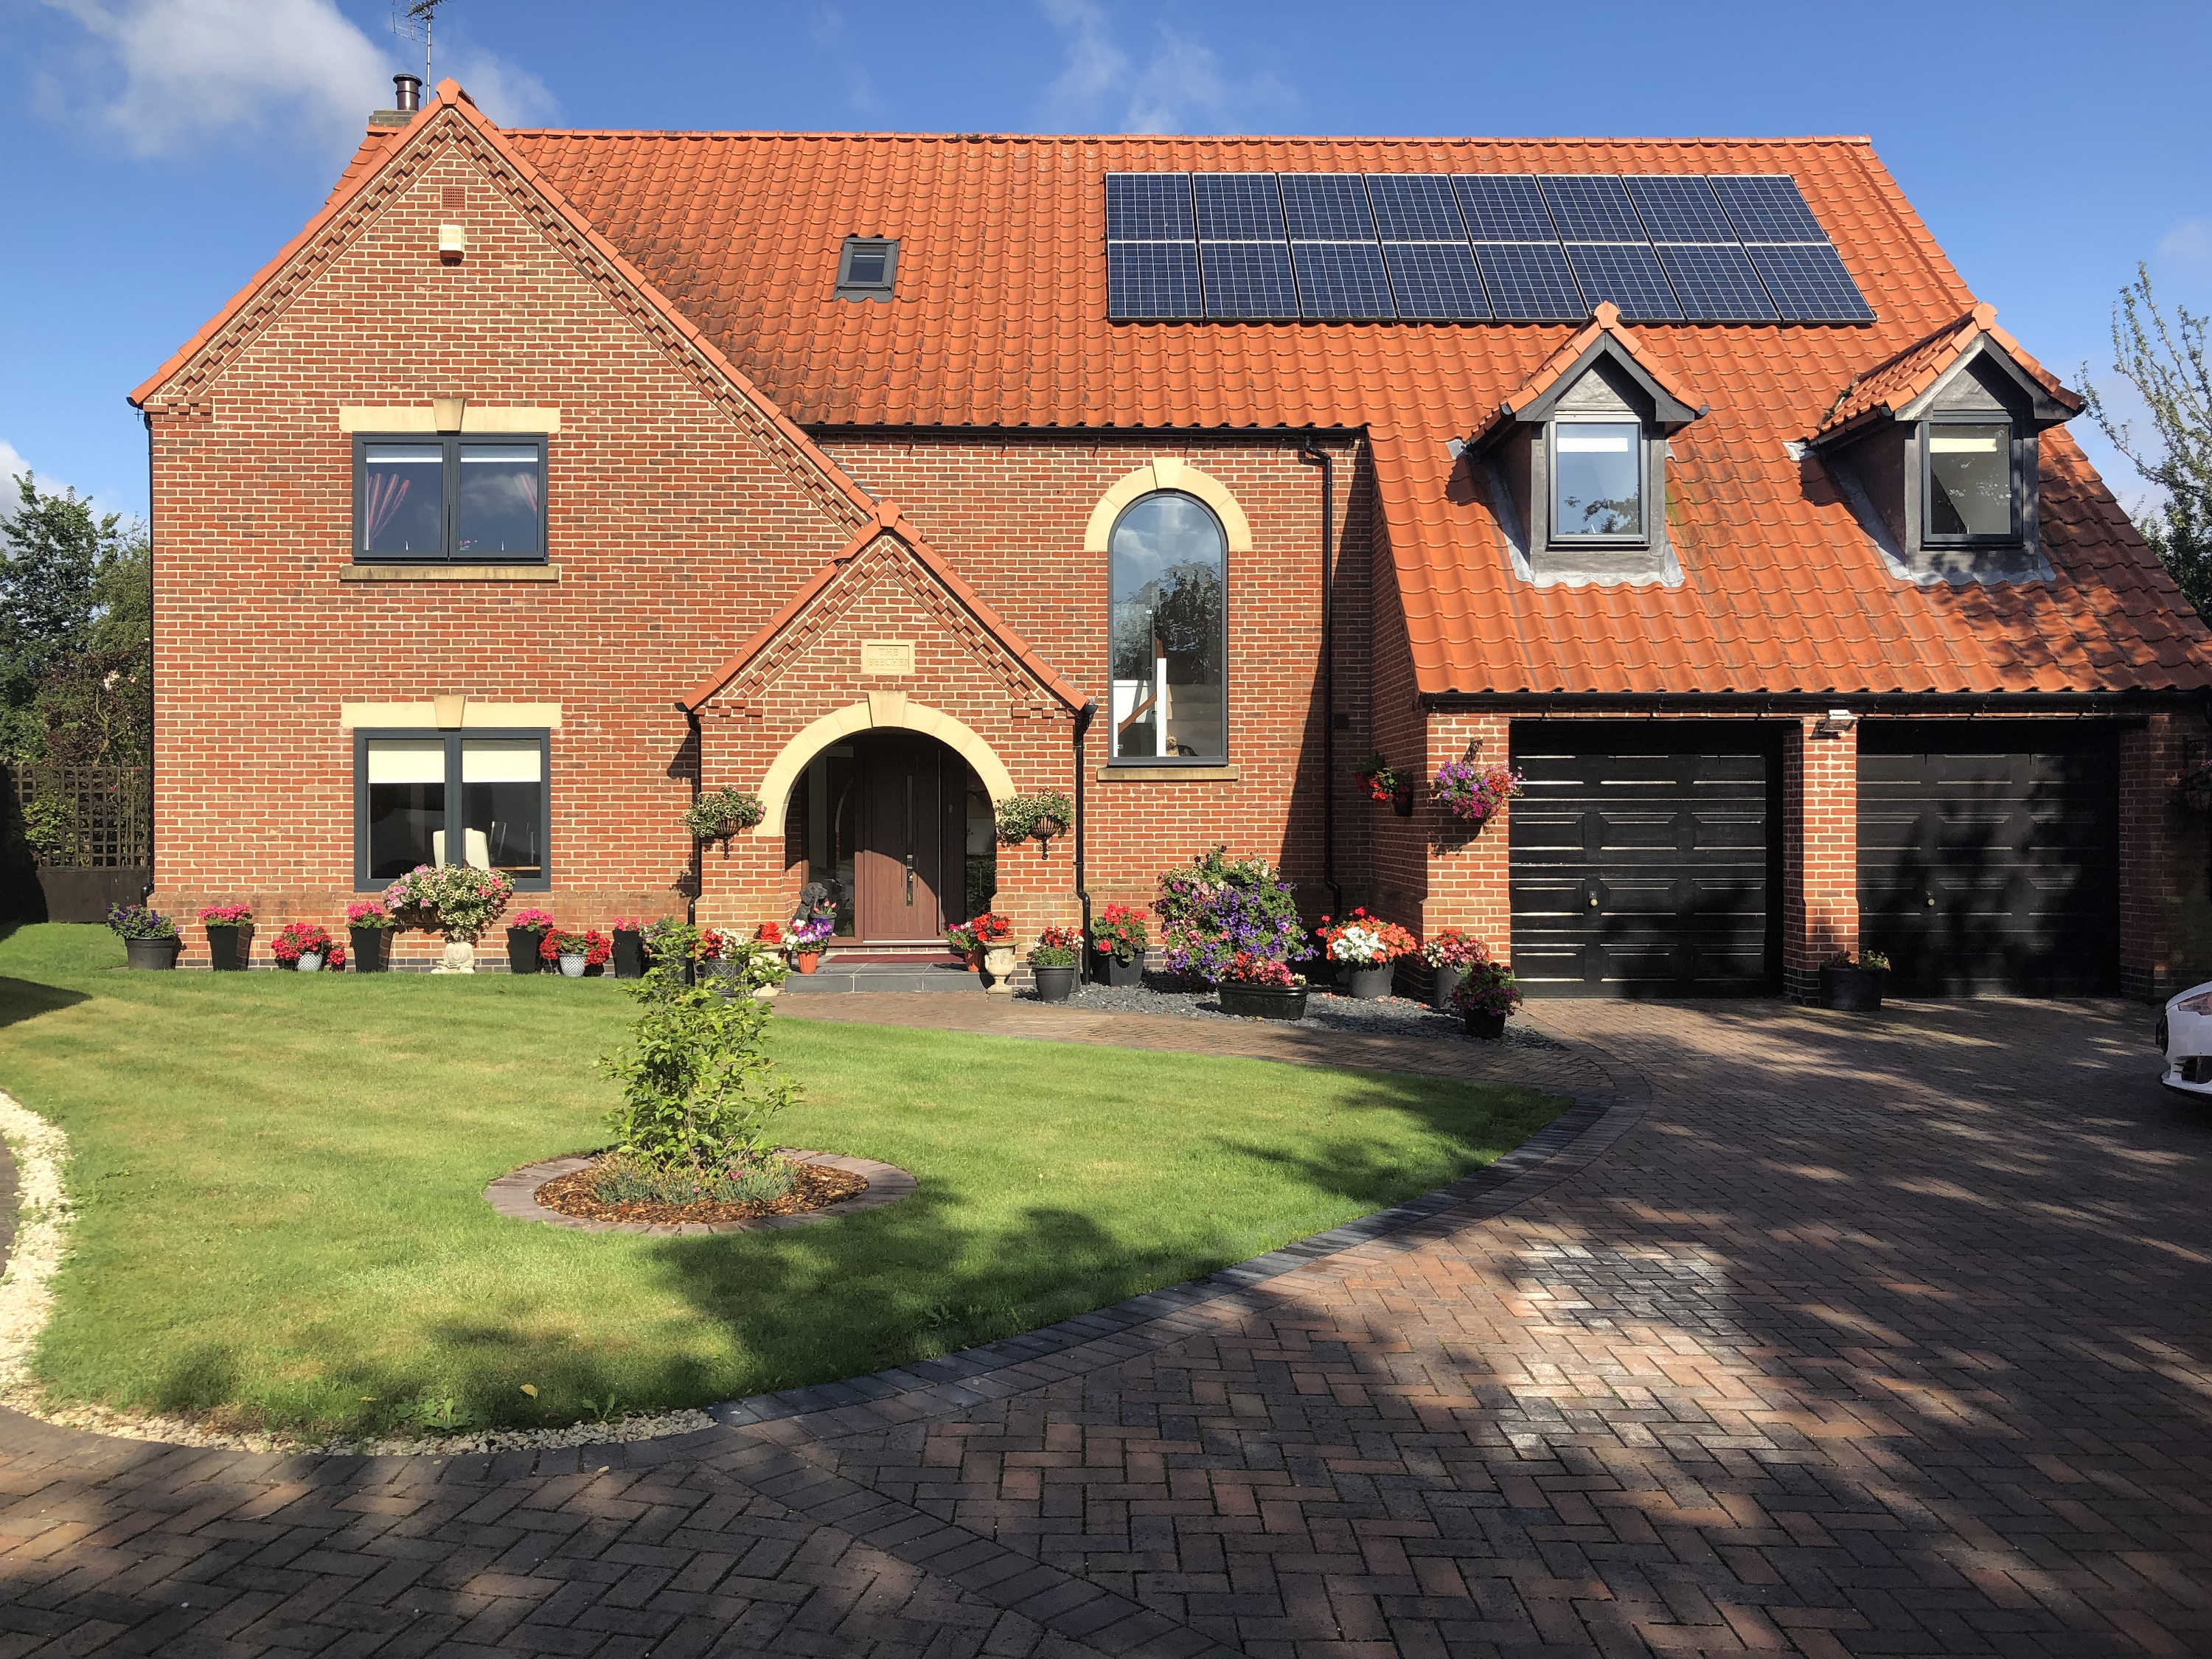 Contemporary Detached house with Solar Panels